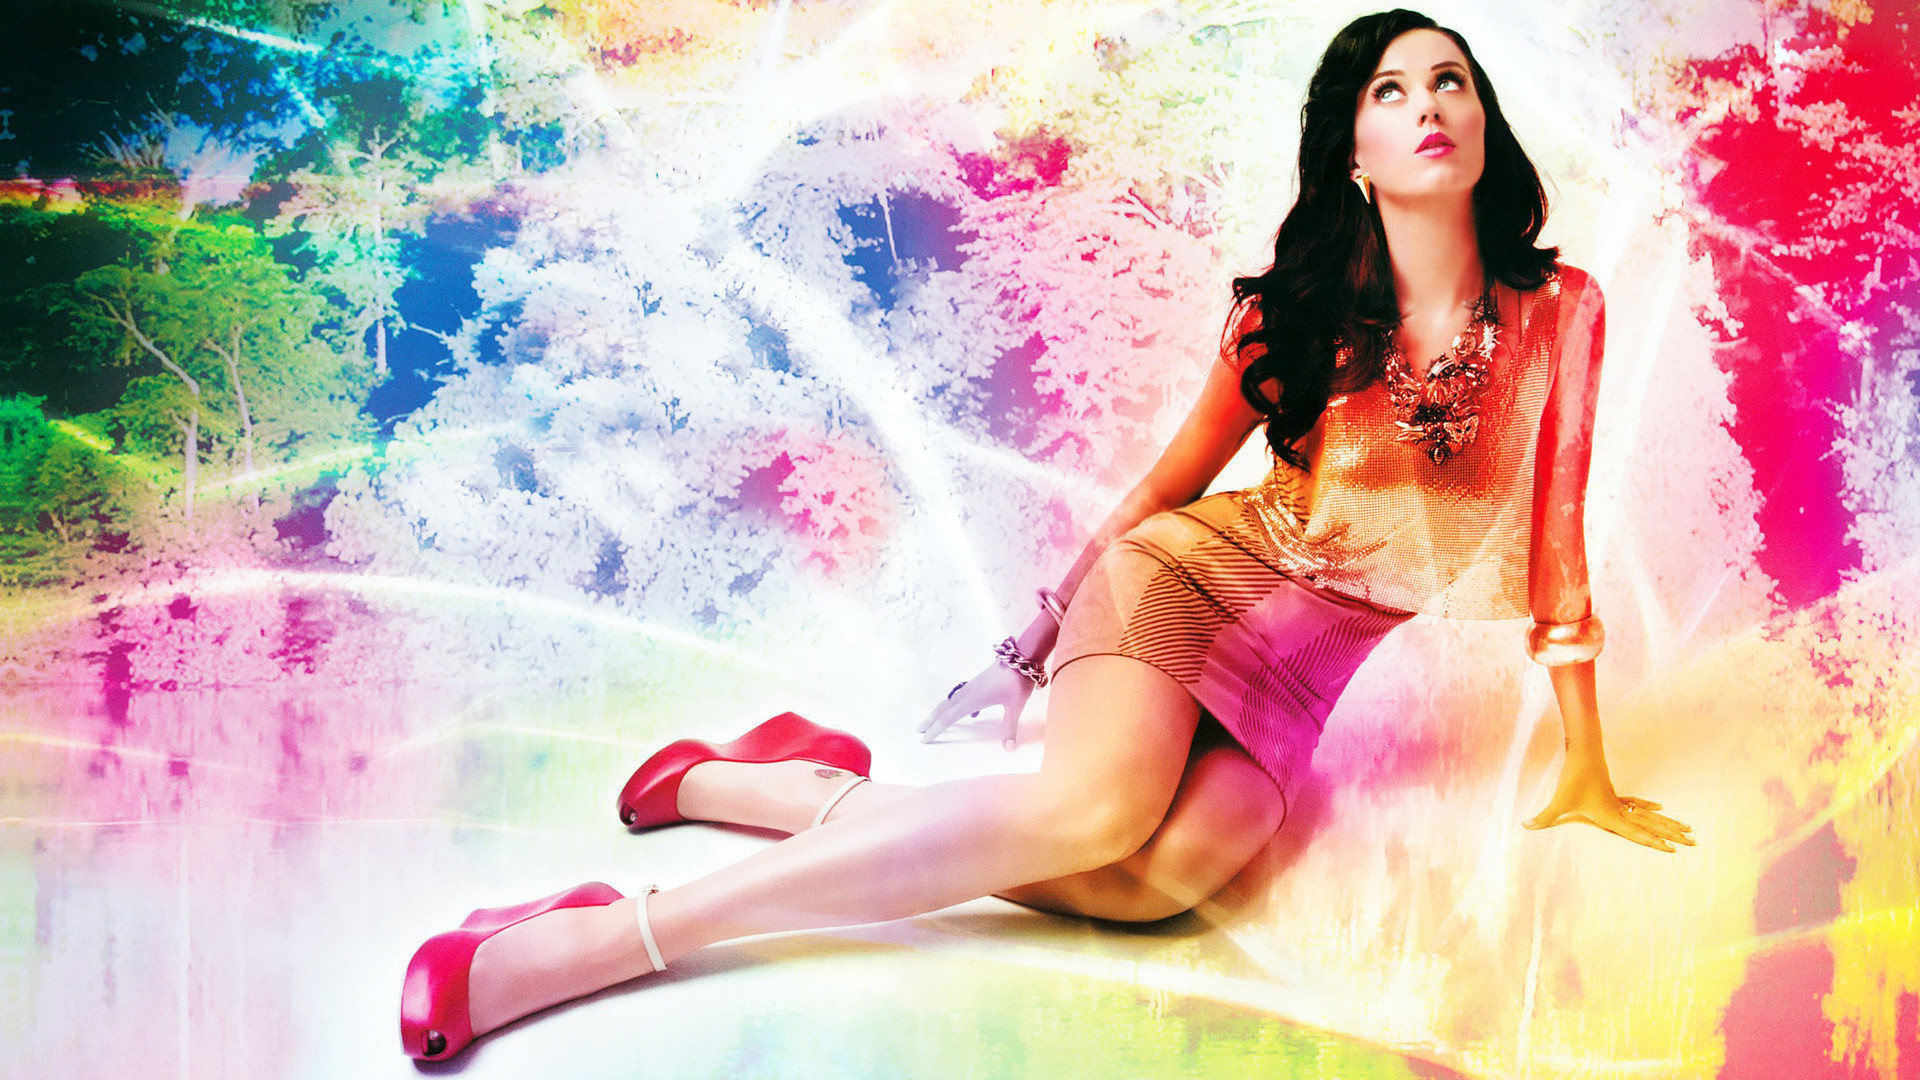 1920x1080 Katy Perry Wallpaper 1080p